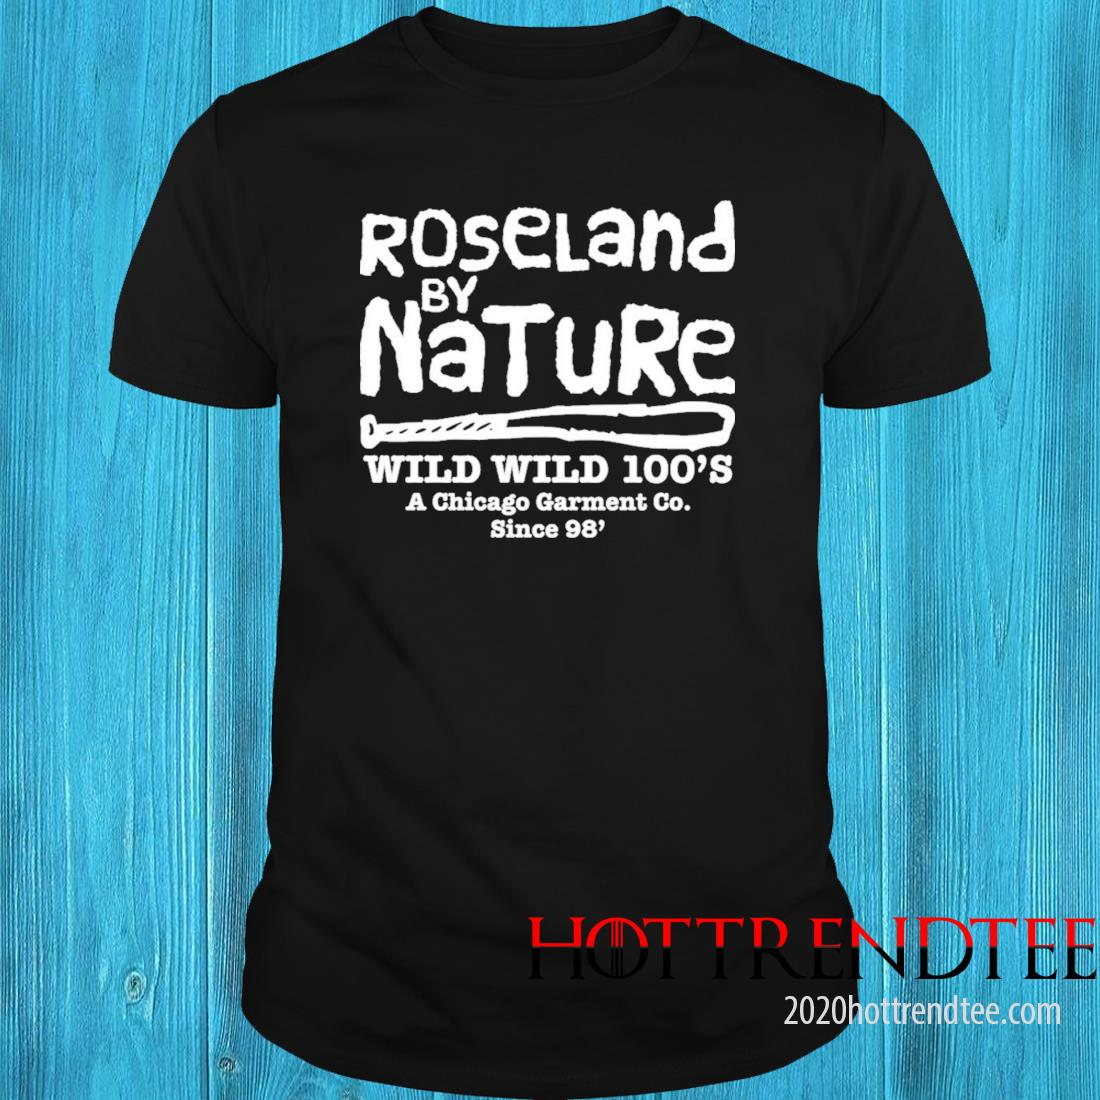 Roseland By Natural Wild Wild 100's A Chicago Garment Co Since 98′ Shirt